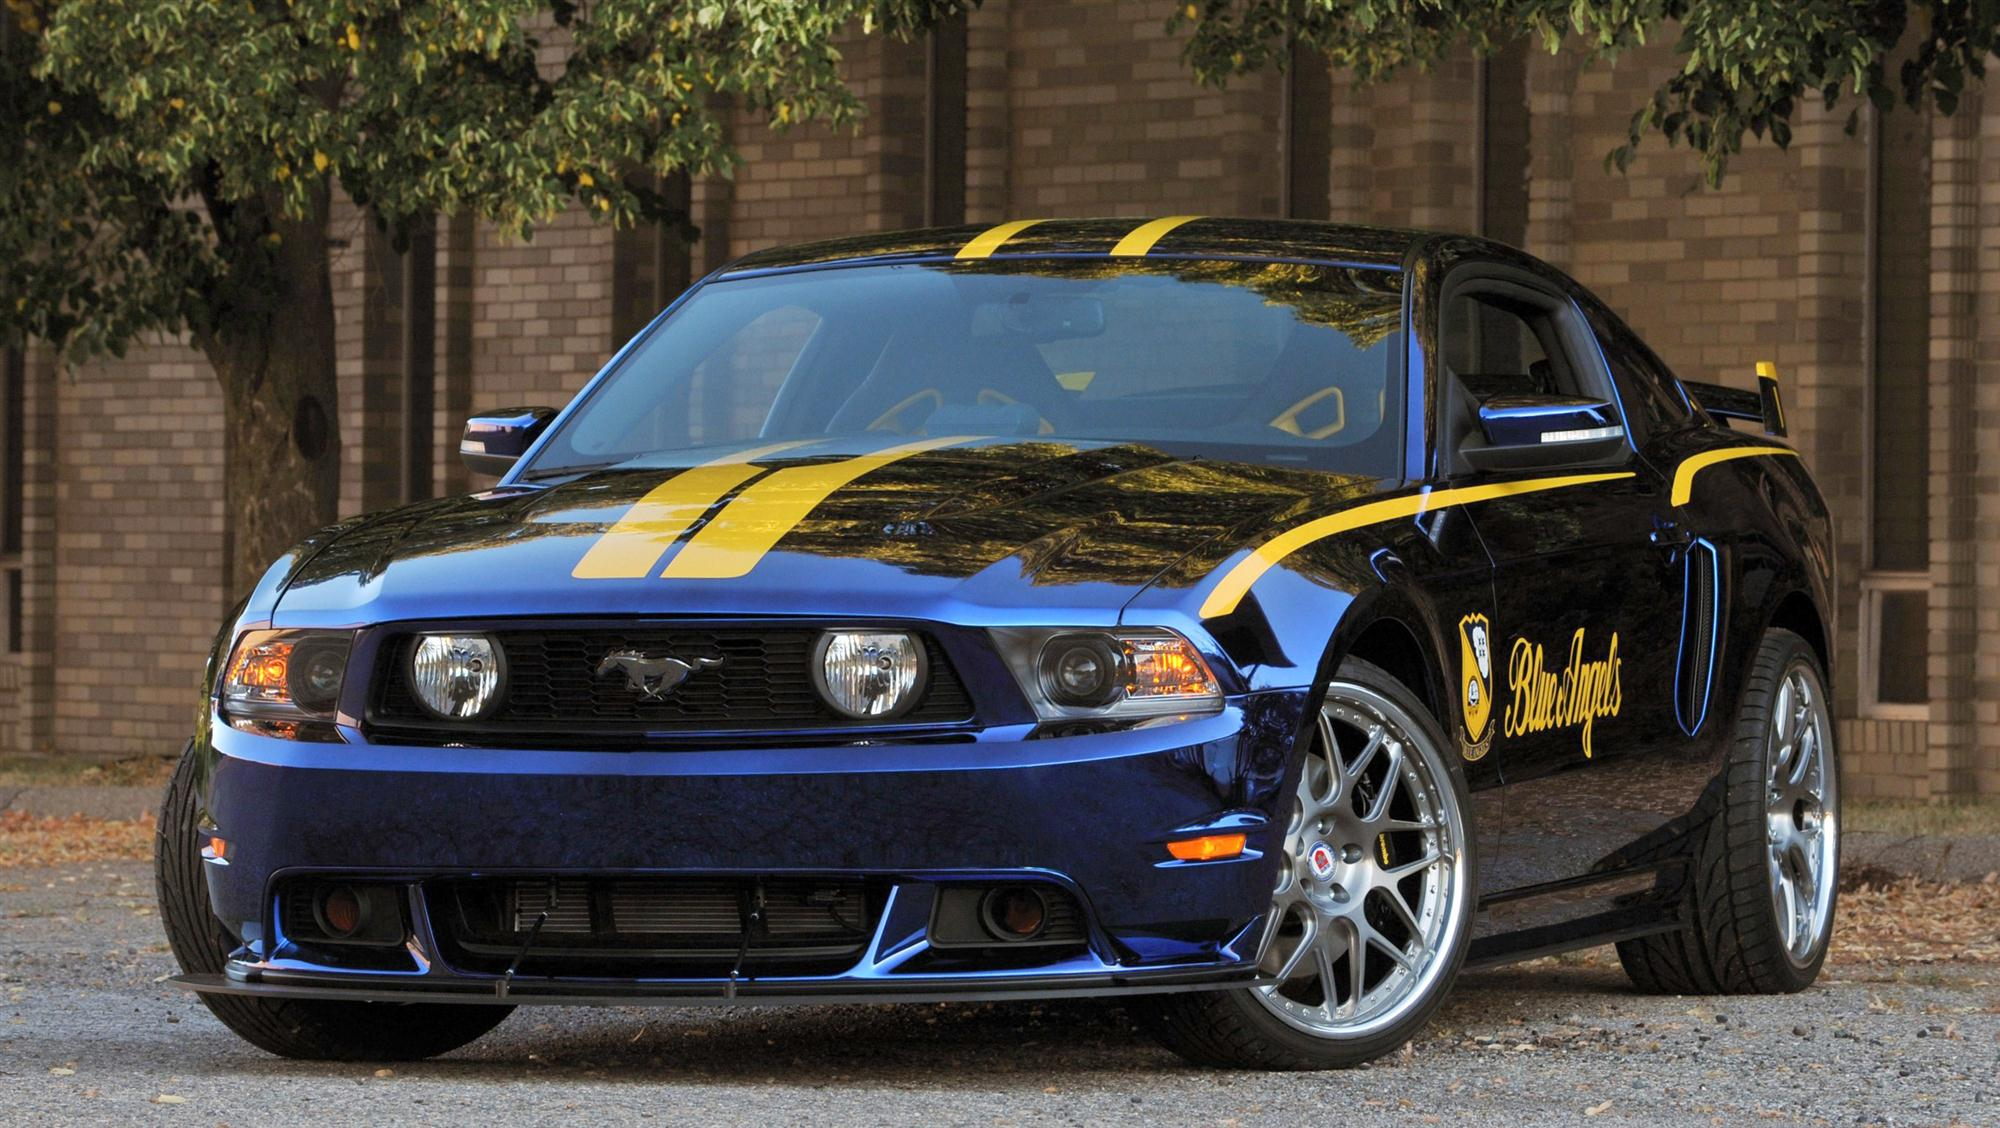 2018 Mustang Gt Review >> 2012 Ford Blue Angels Mustang GT Fetches $400,000 At Auction